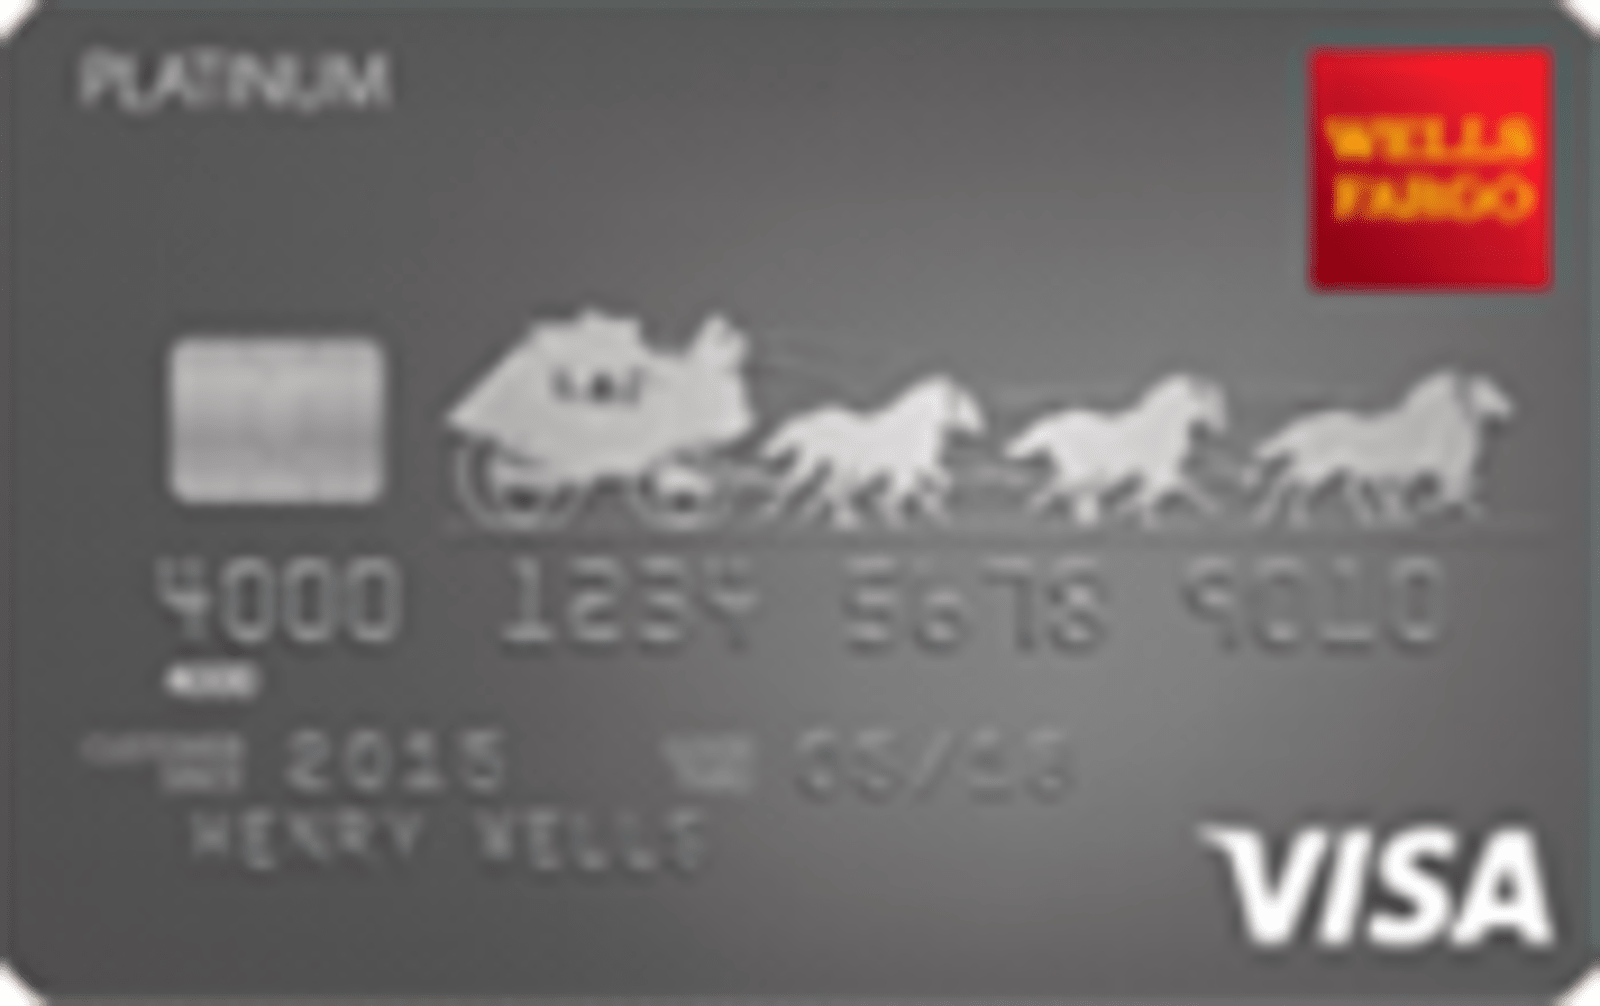 Wells Fargo Secured Credit Card: Is It Worth Applying For